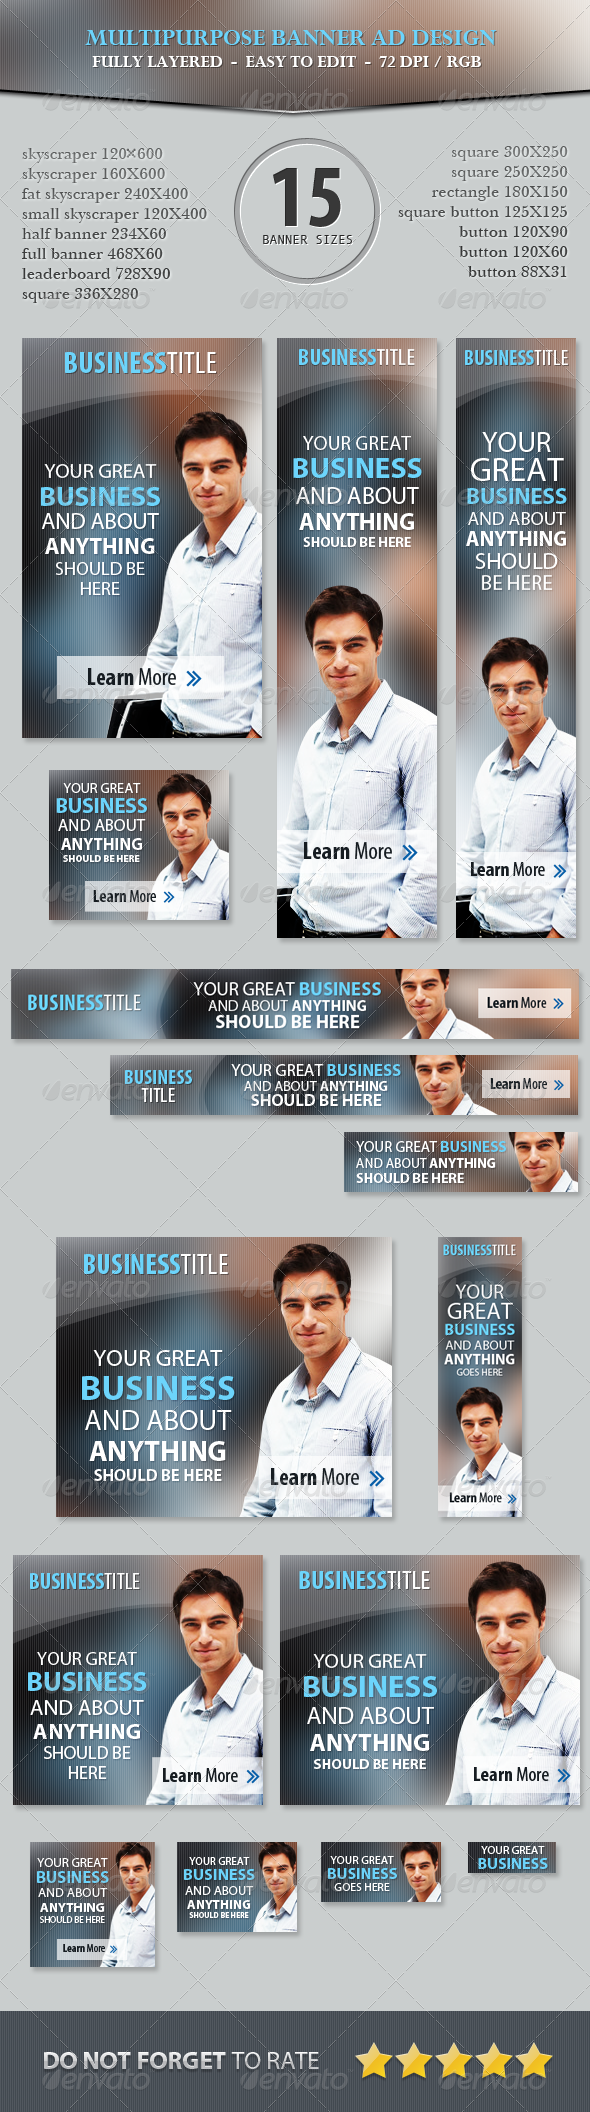 GraphicRiver Multipurpose Business Banner ad Design 5183255